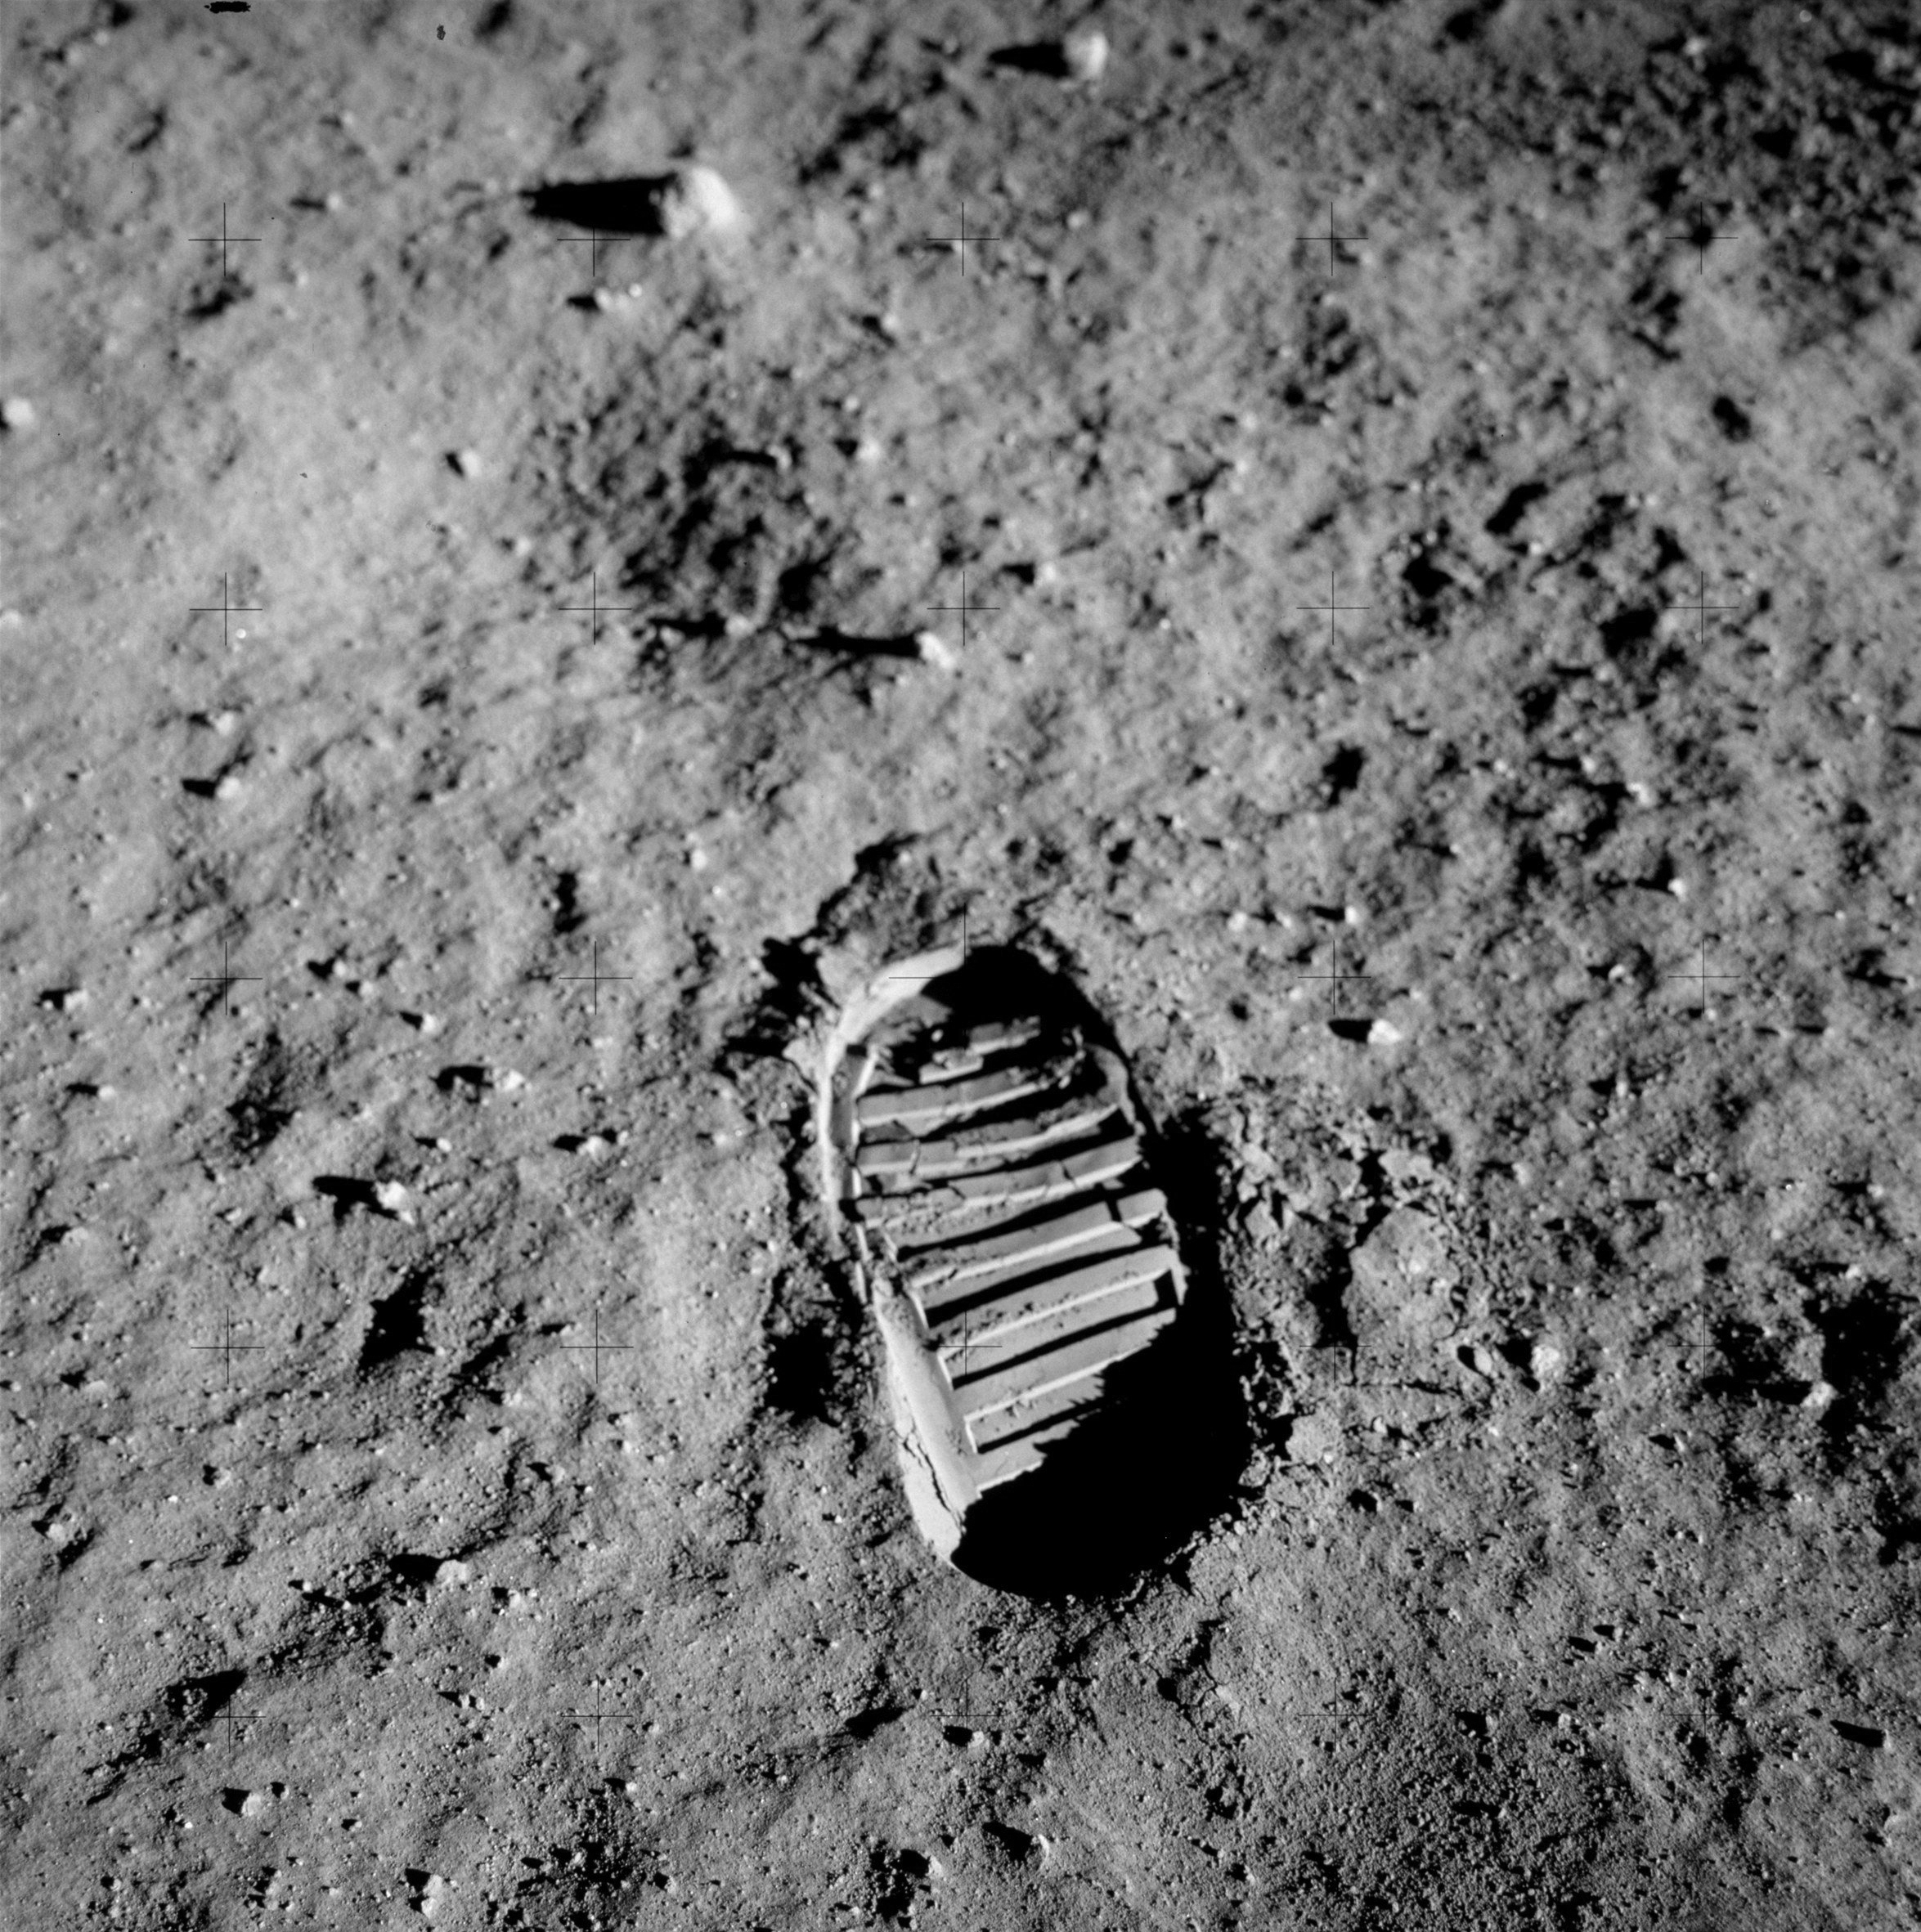 apollo 11 moon landing first step - photo #20